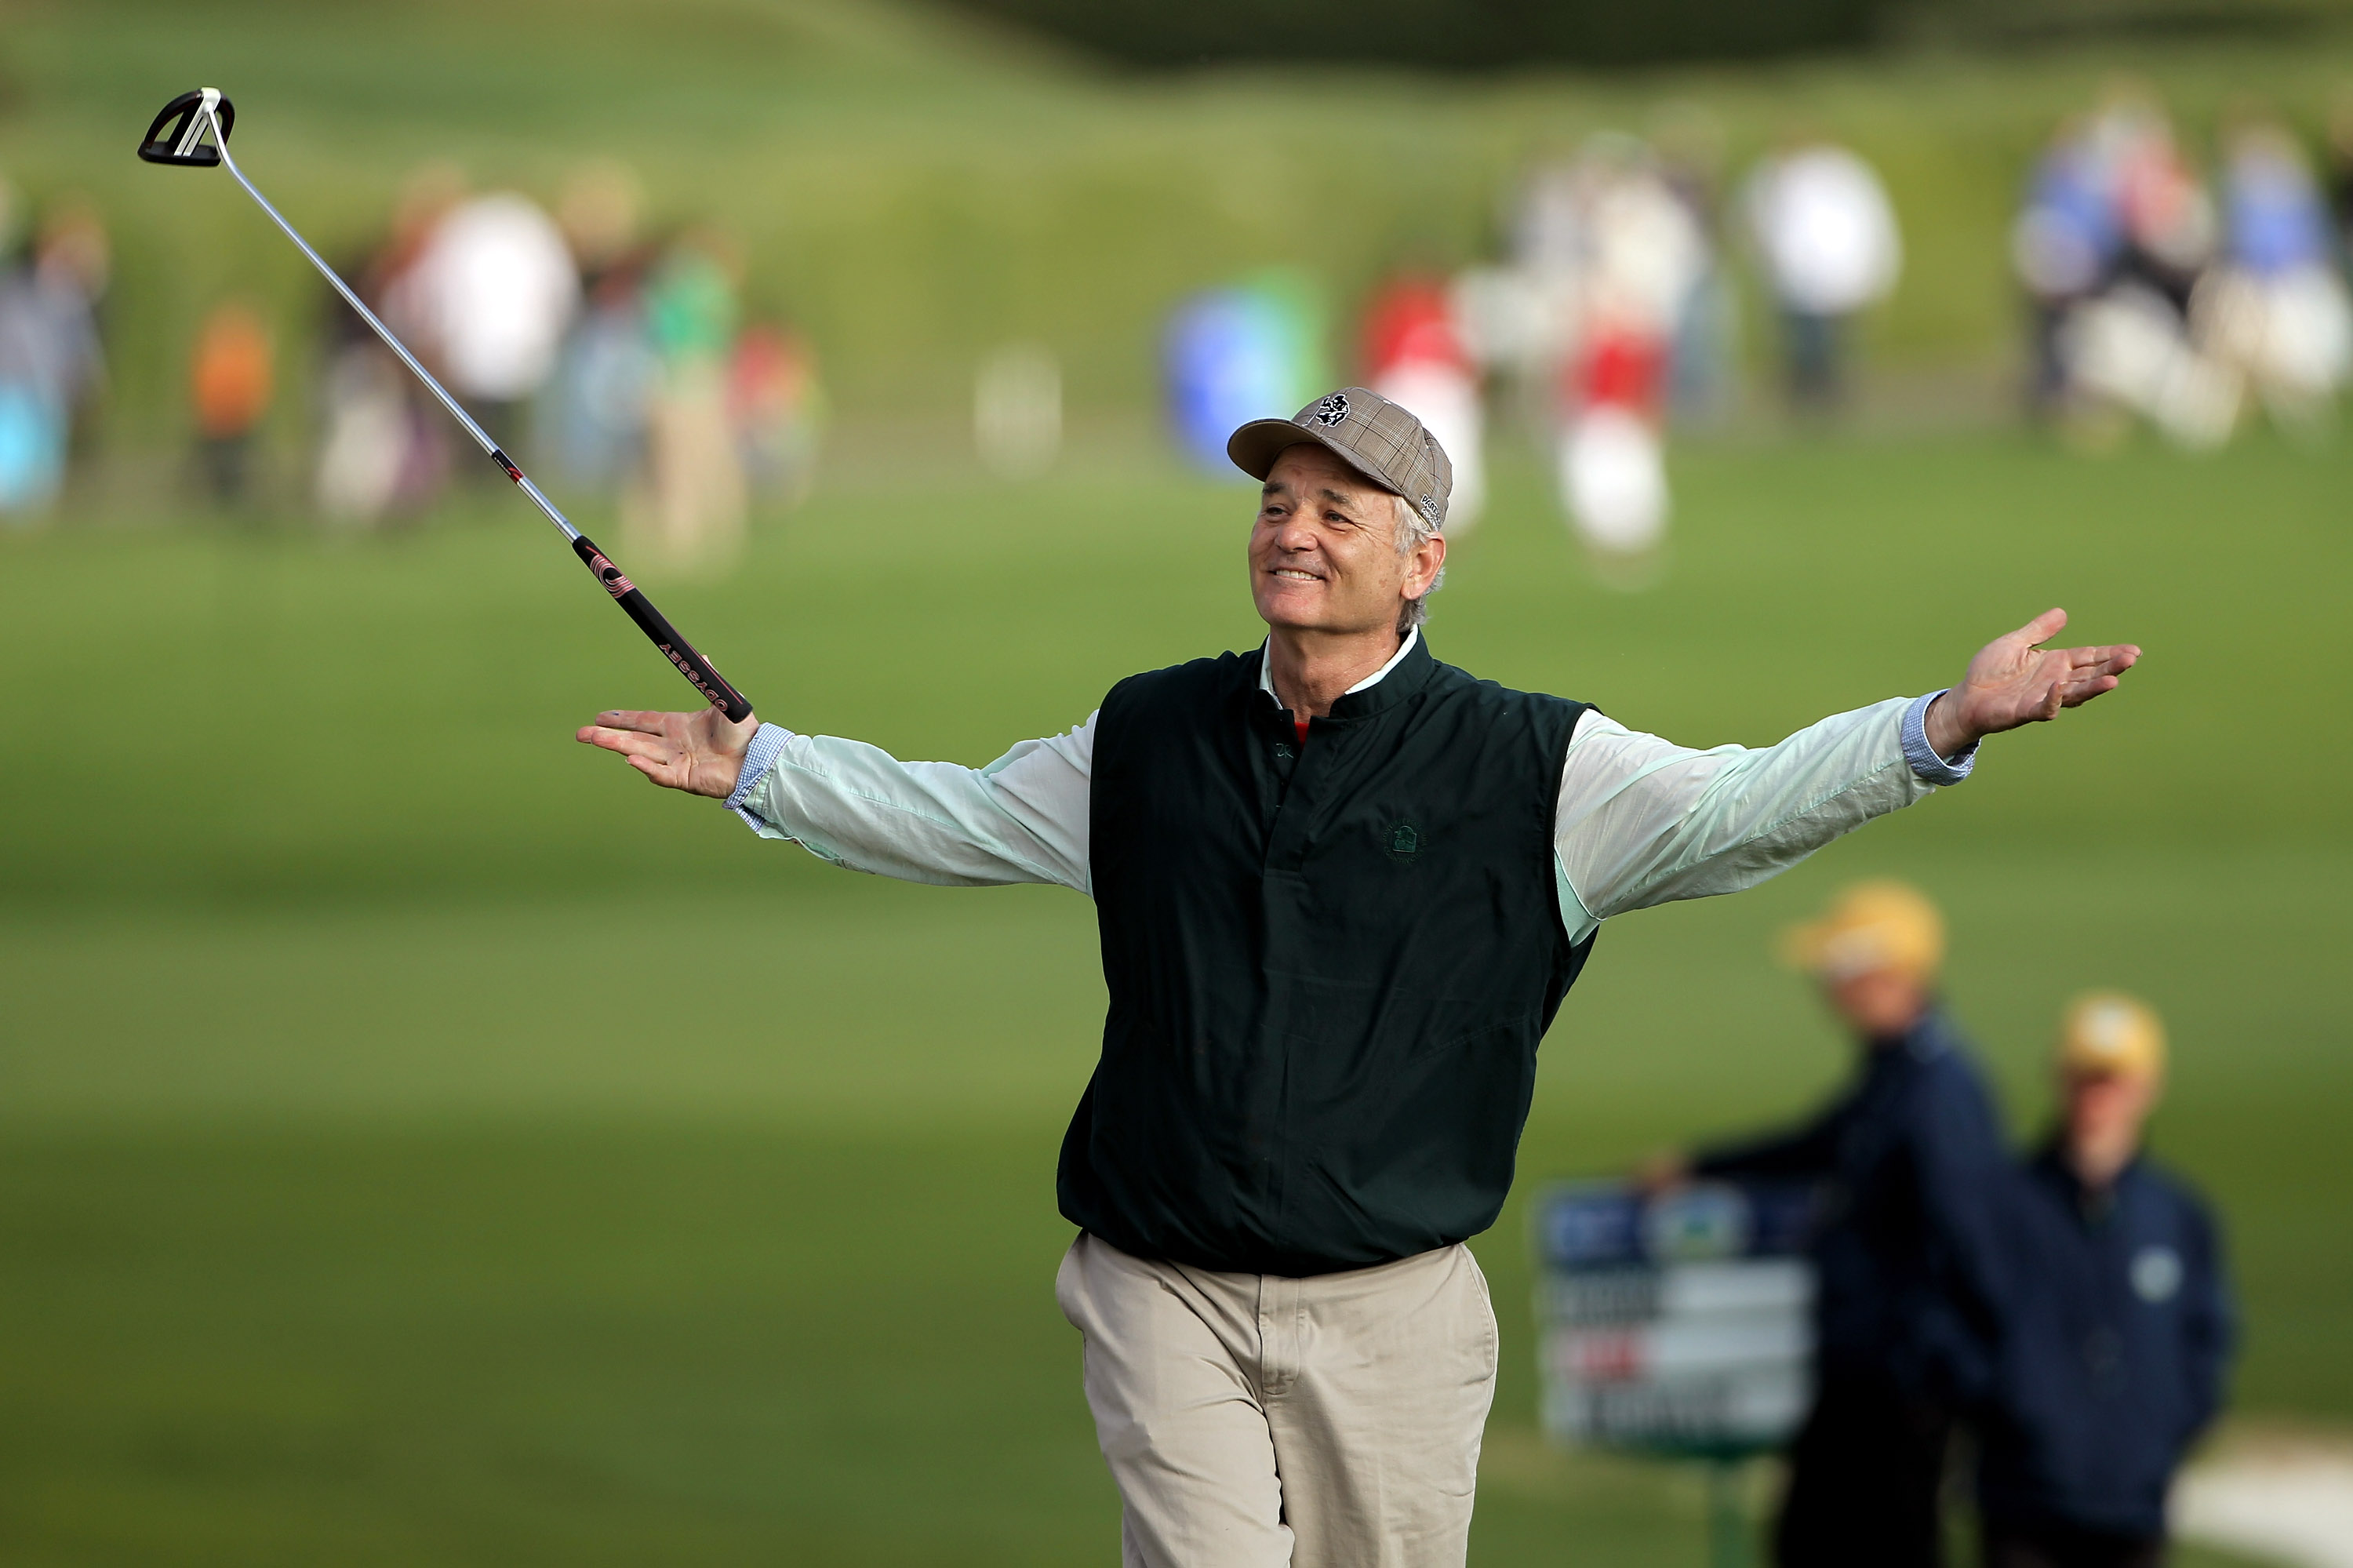 PEBBLE BEACH, CA - FEBRUARY 13:  Actor Bill Murray tosses his club in the air after sinking a putt on the 18th hole during round three of the AT&T Pebble Beach National Pro-Am at Pebble Beach Golf Links on February 13, 2010 in Pebble Beach, California.  (